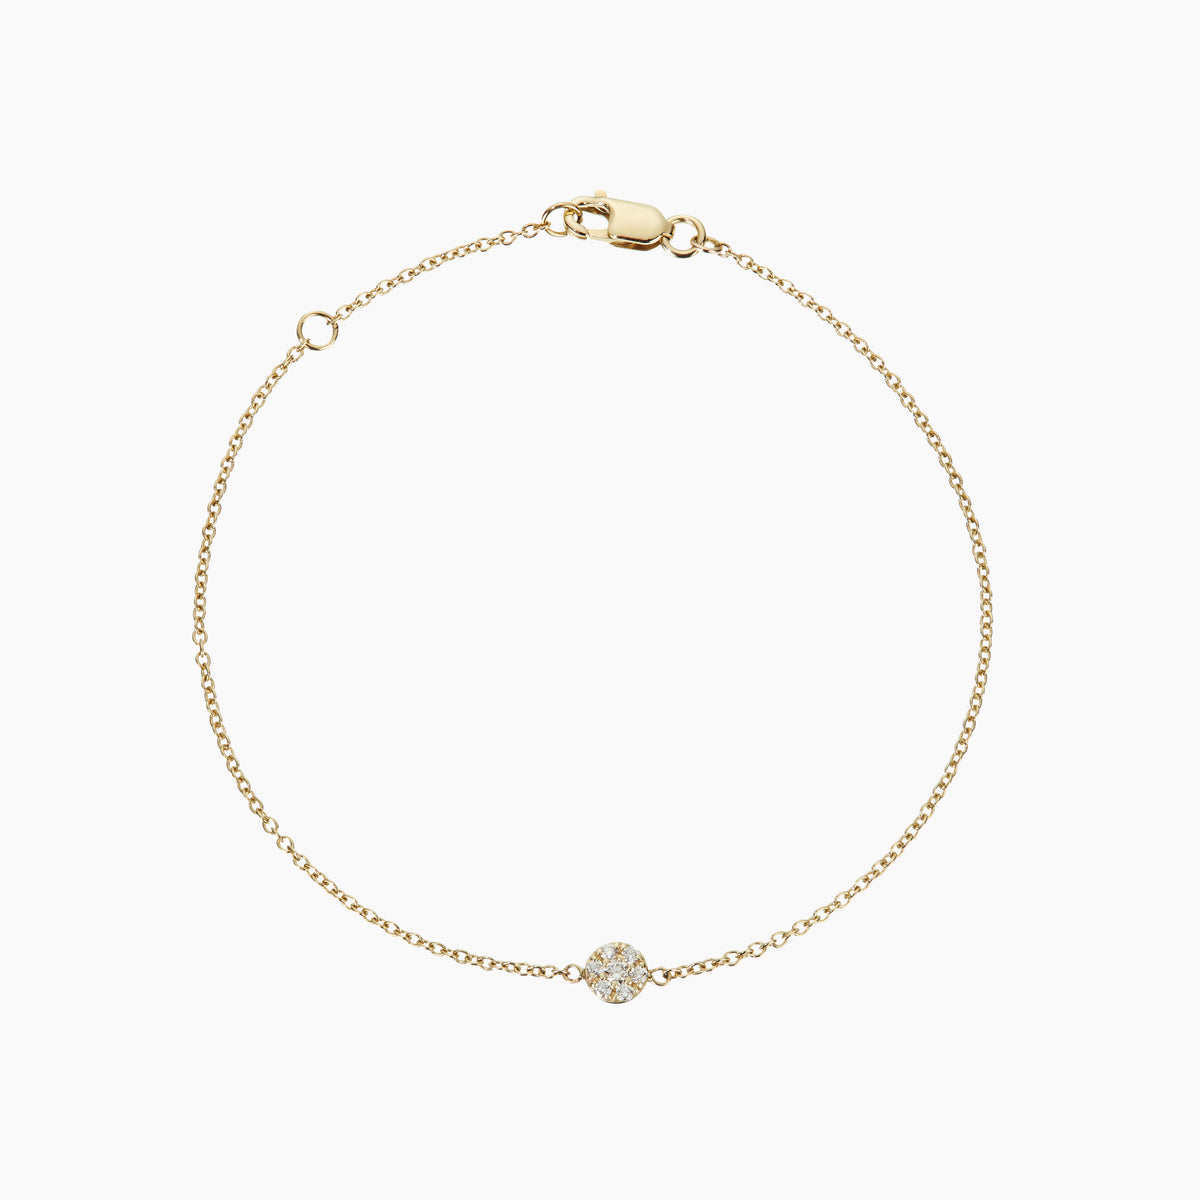 Gold bracelet featuring aboveground diamond disc in partnership with the Diamond Foundry